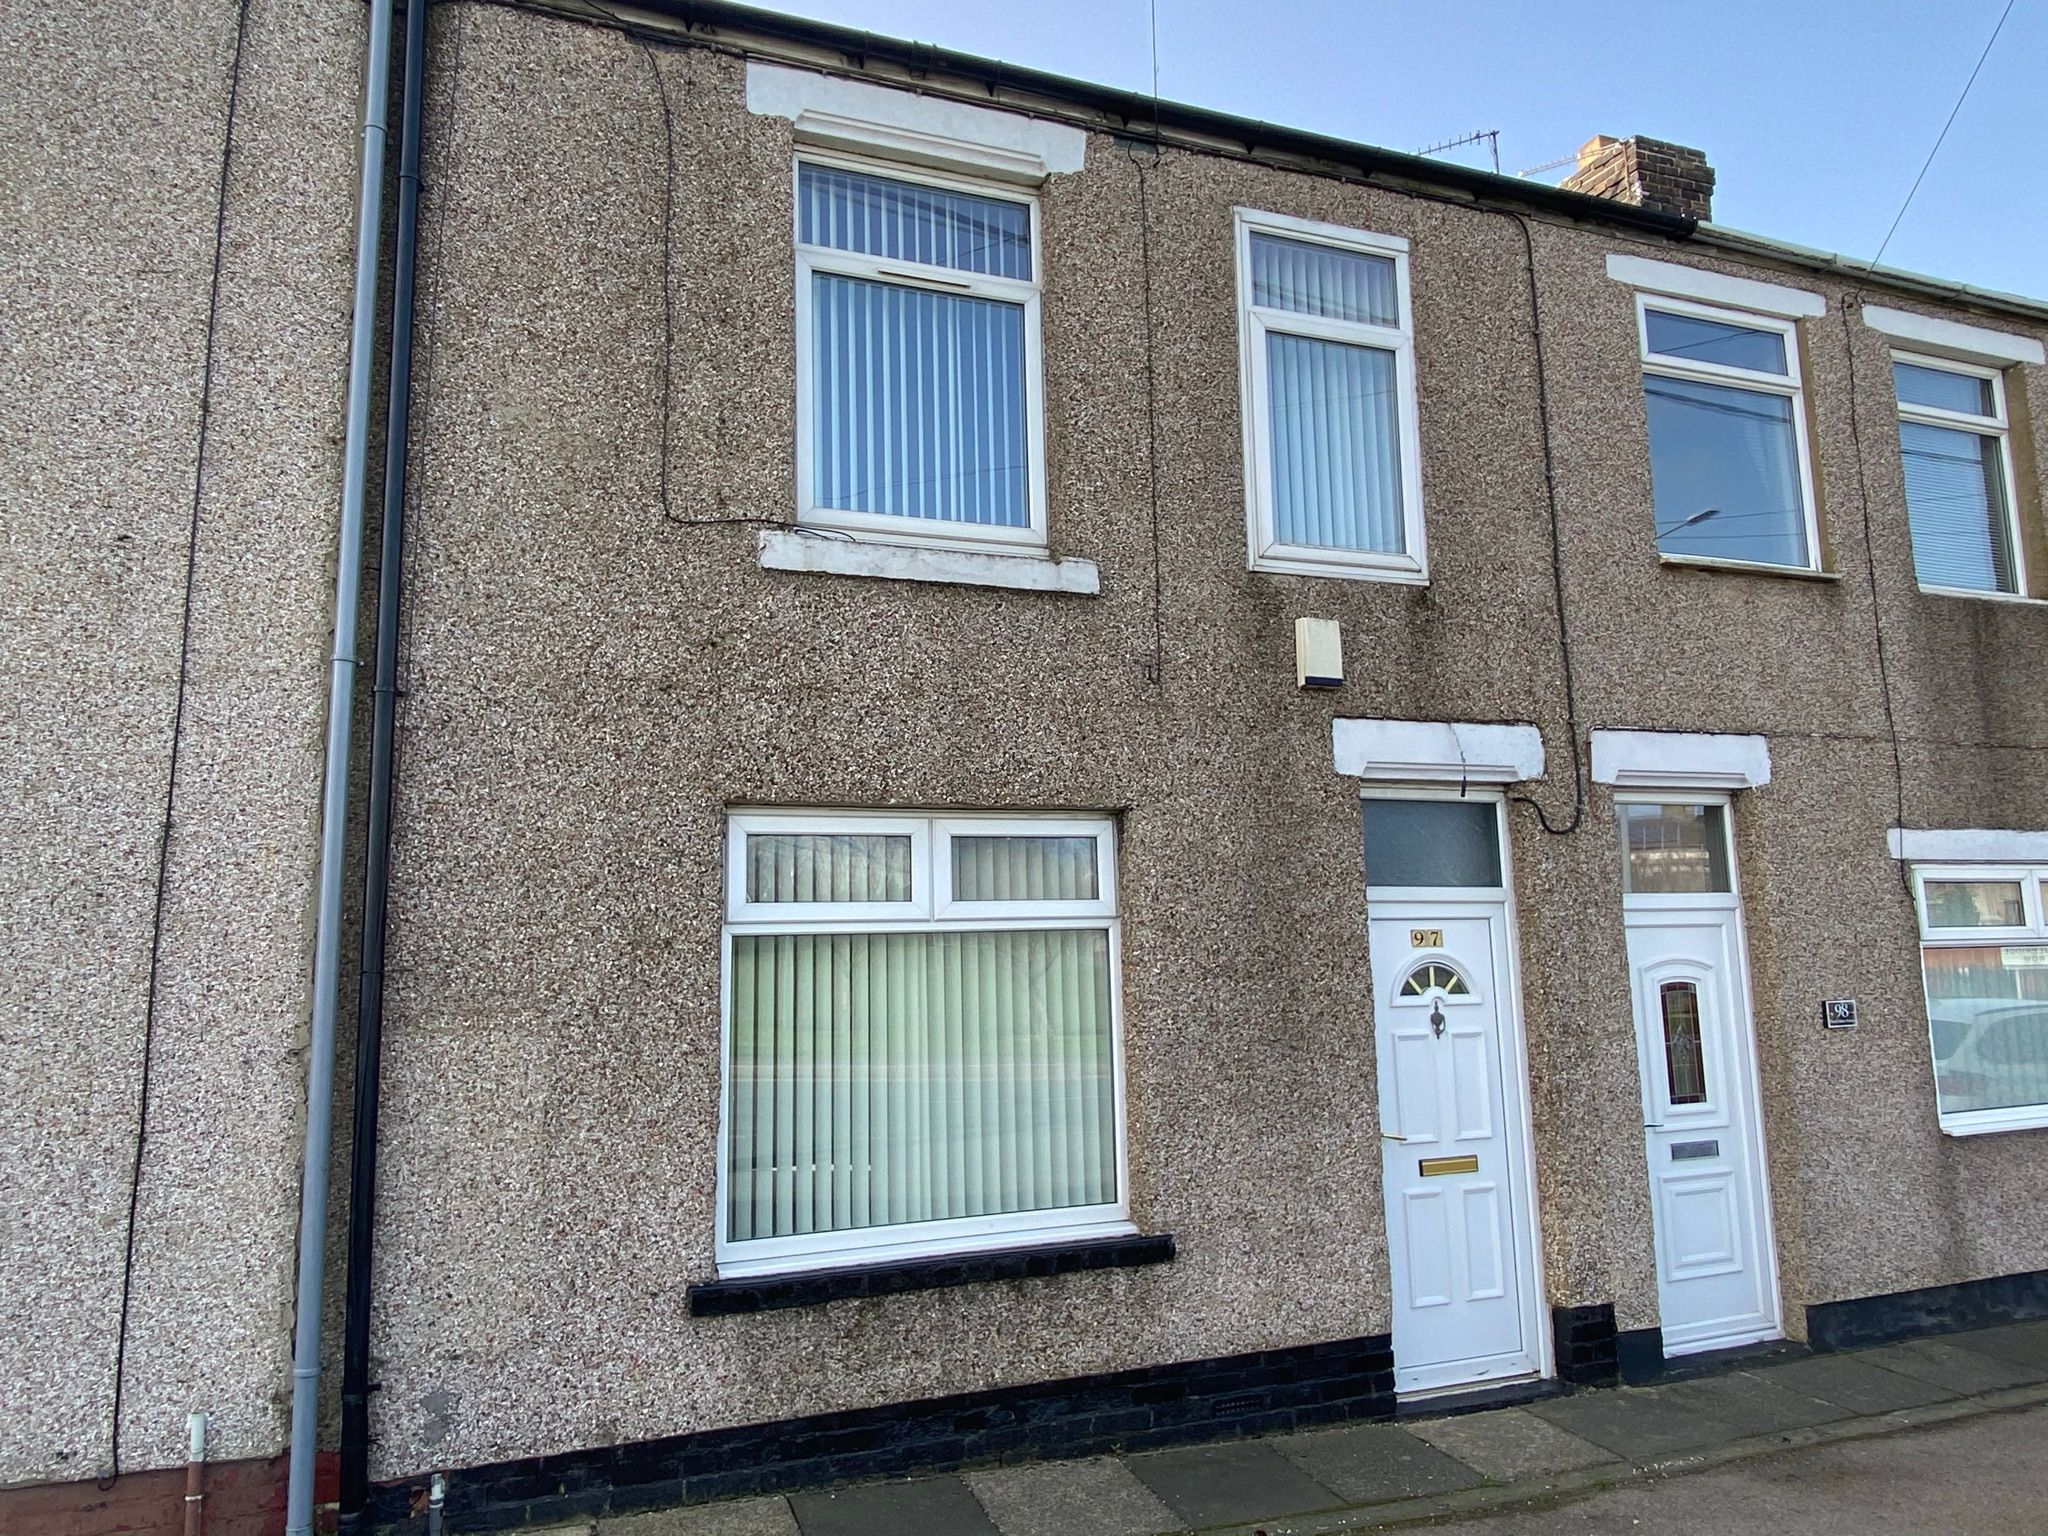 2 bedroom mid terraced house Let Agreed in Ferryhill - Photograph 1.